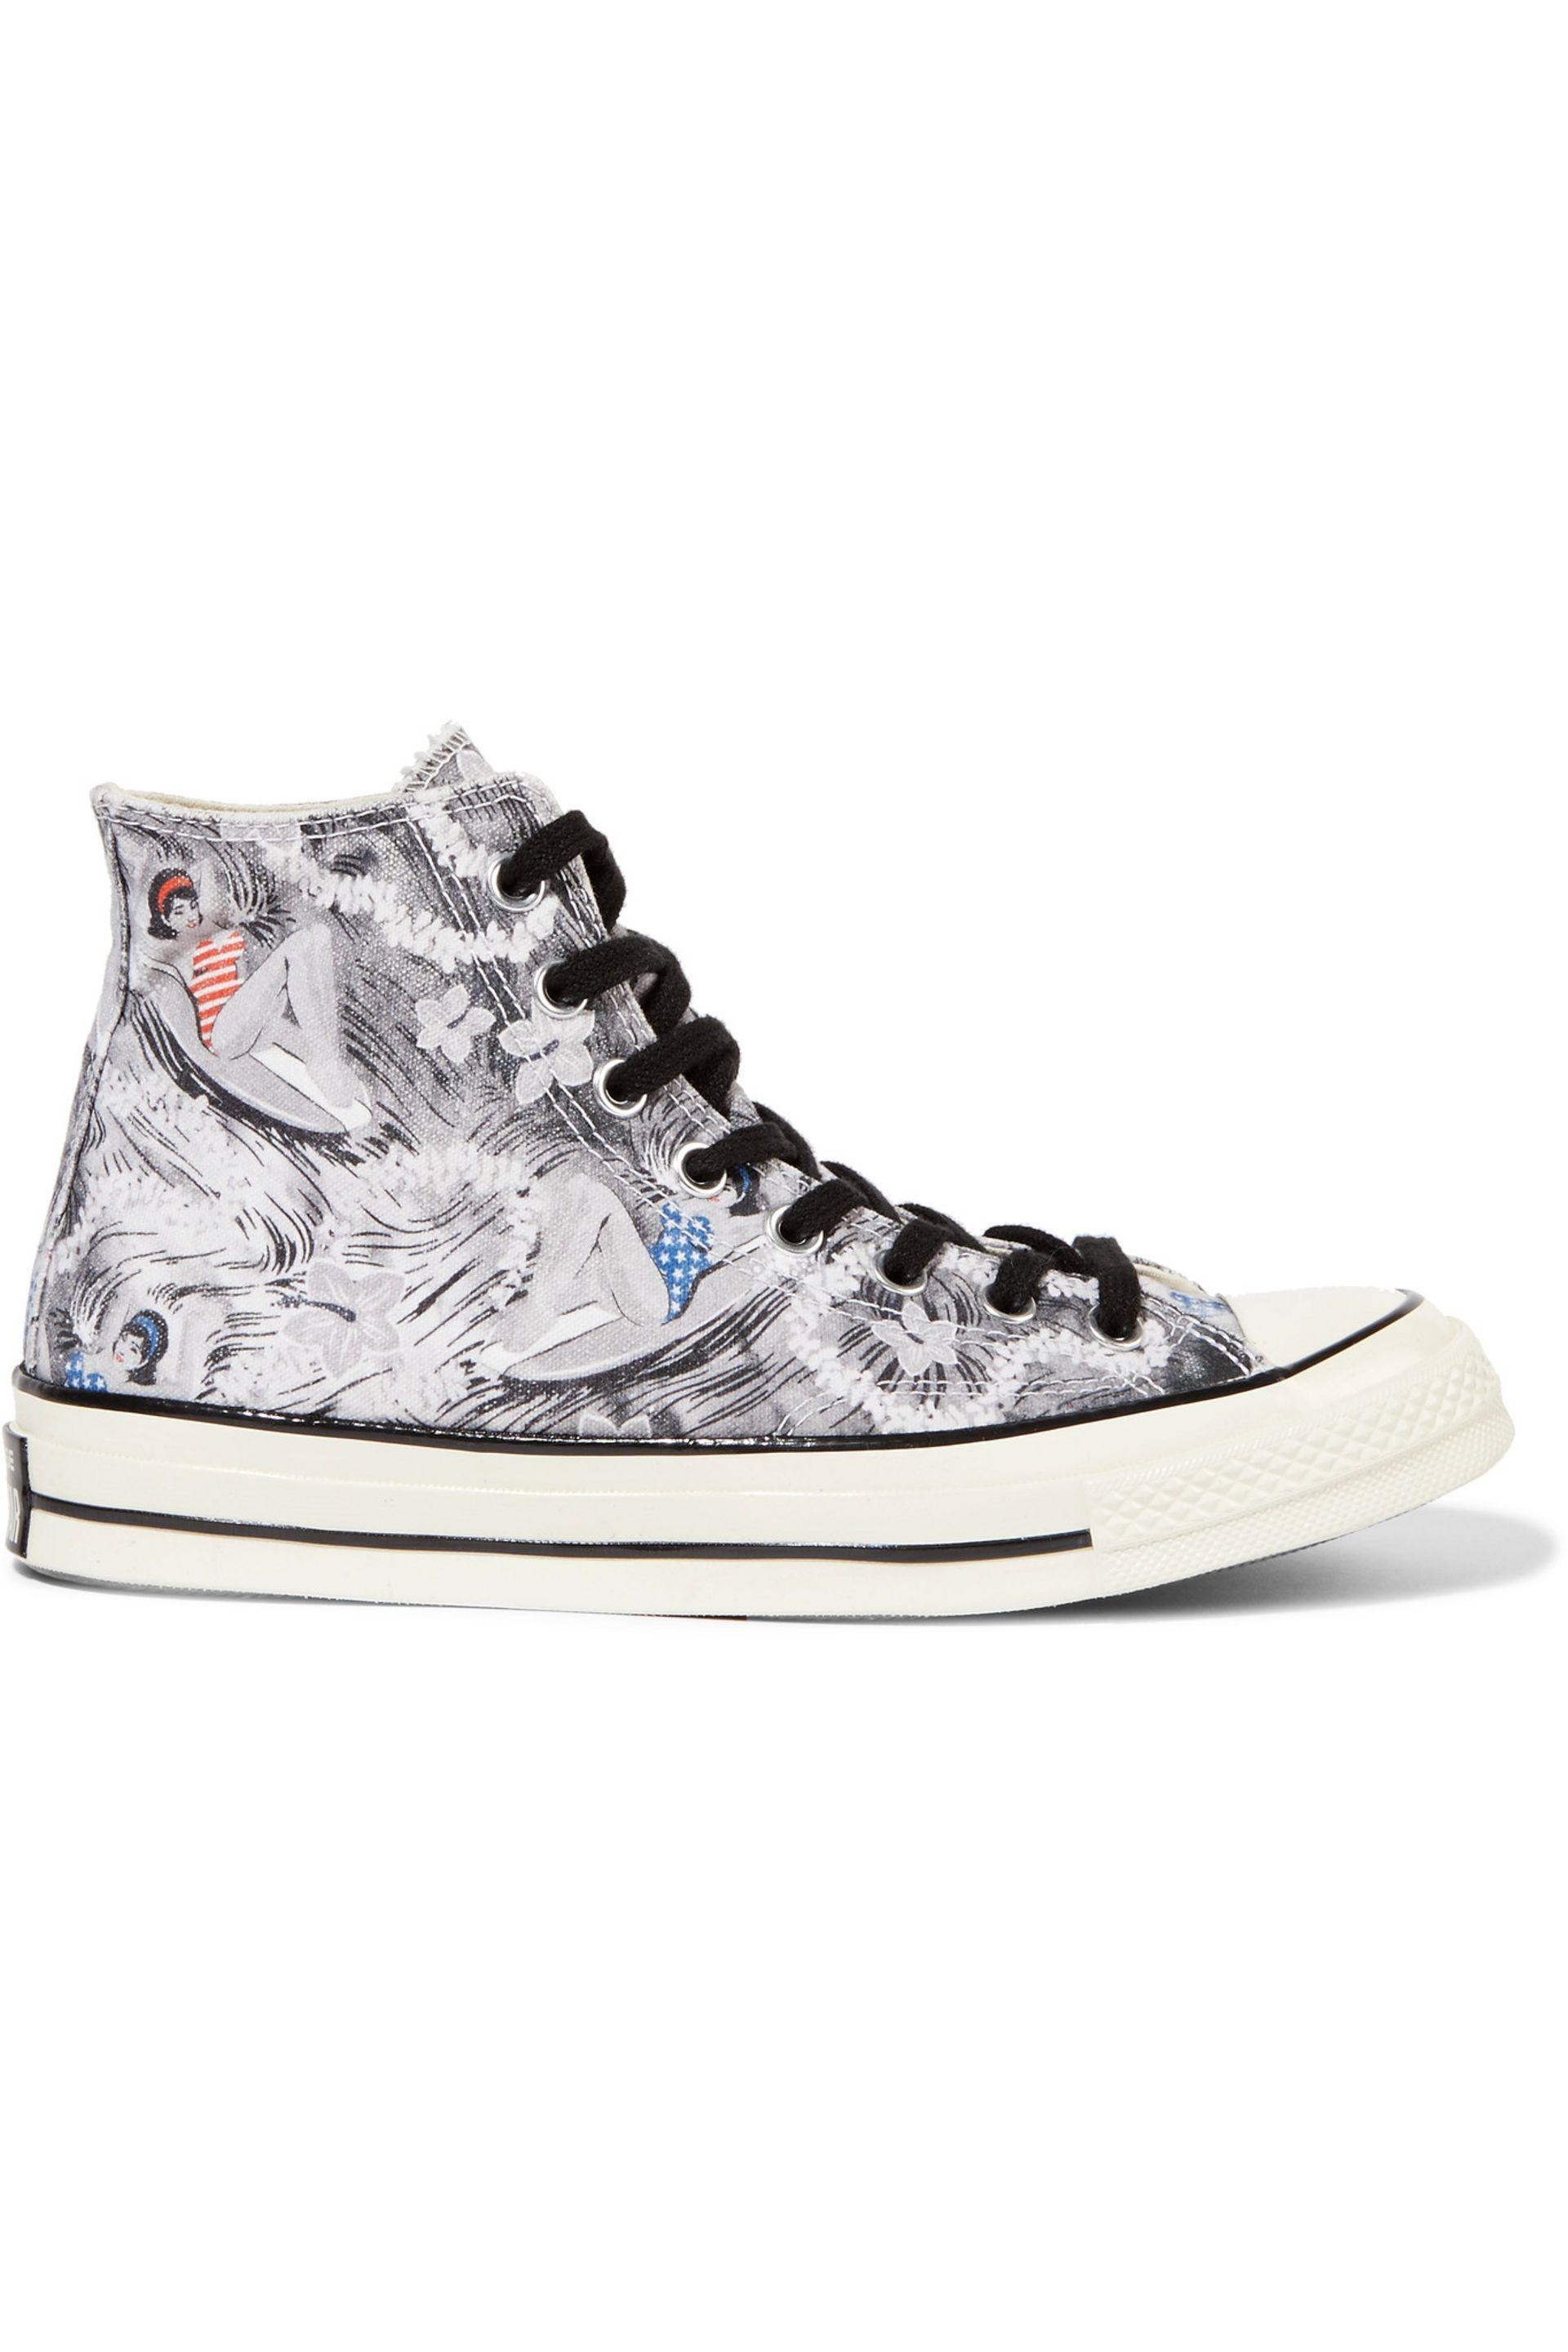 98e05ac0fd2c9e Converse All Star Chuck 70s Hawaiian Print Canvas Sneakers in White ...